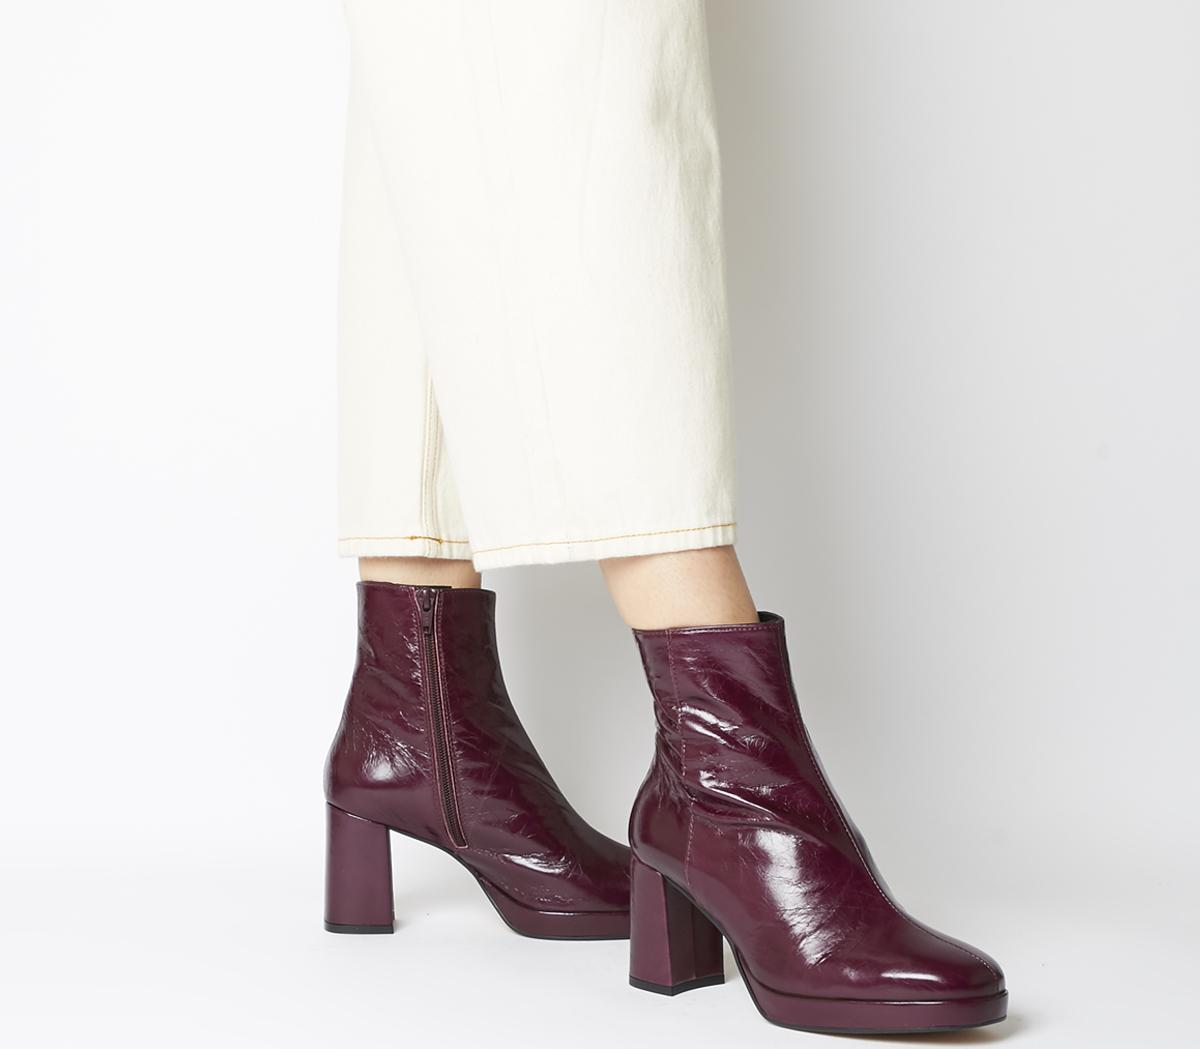 Aquarius Low Platform Boots